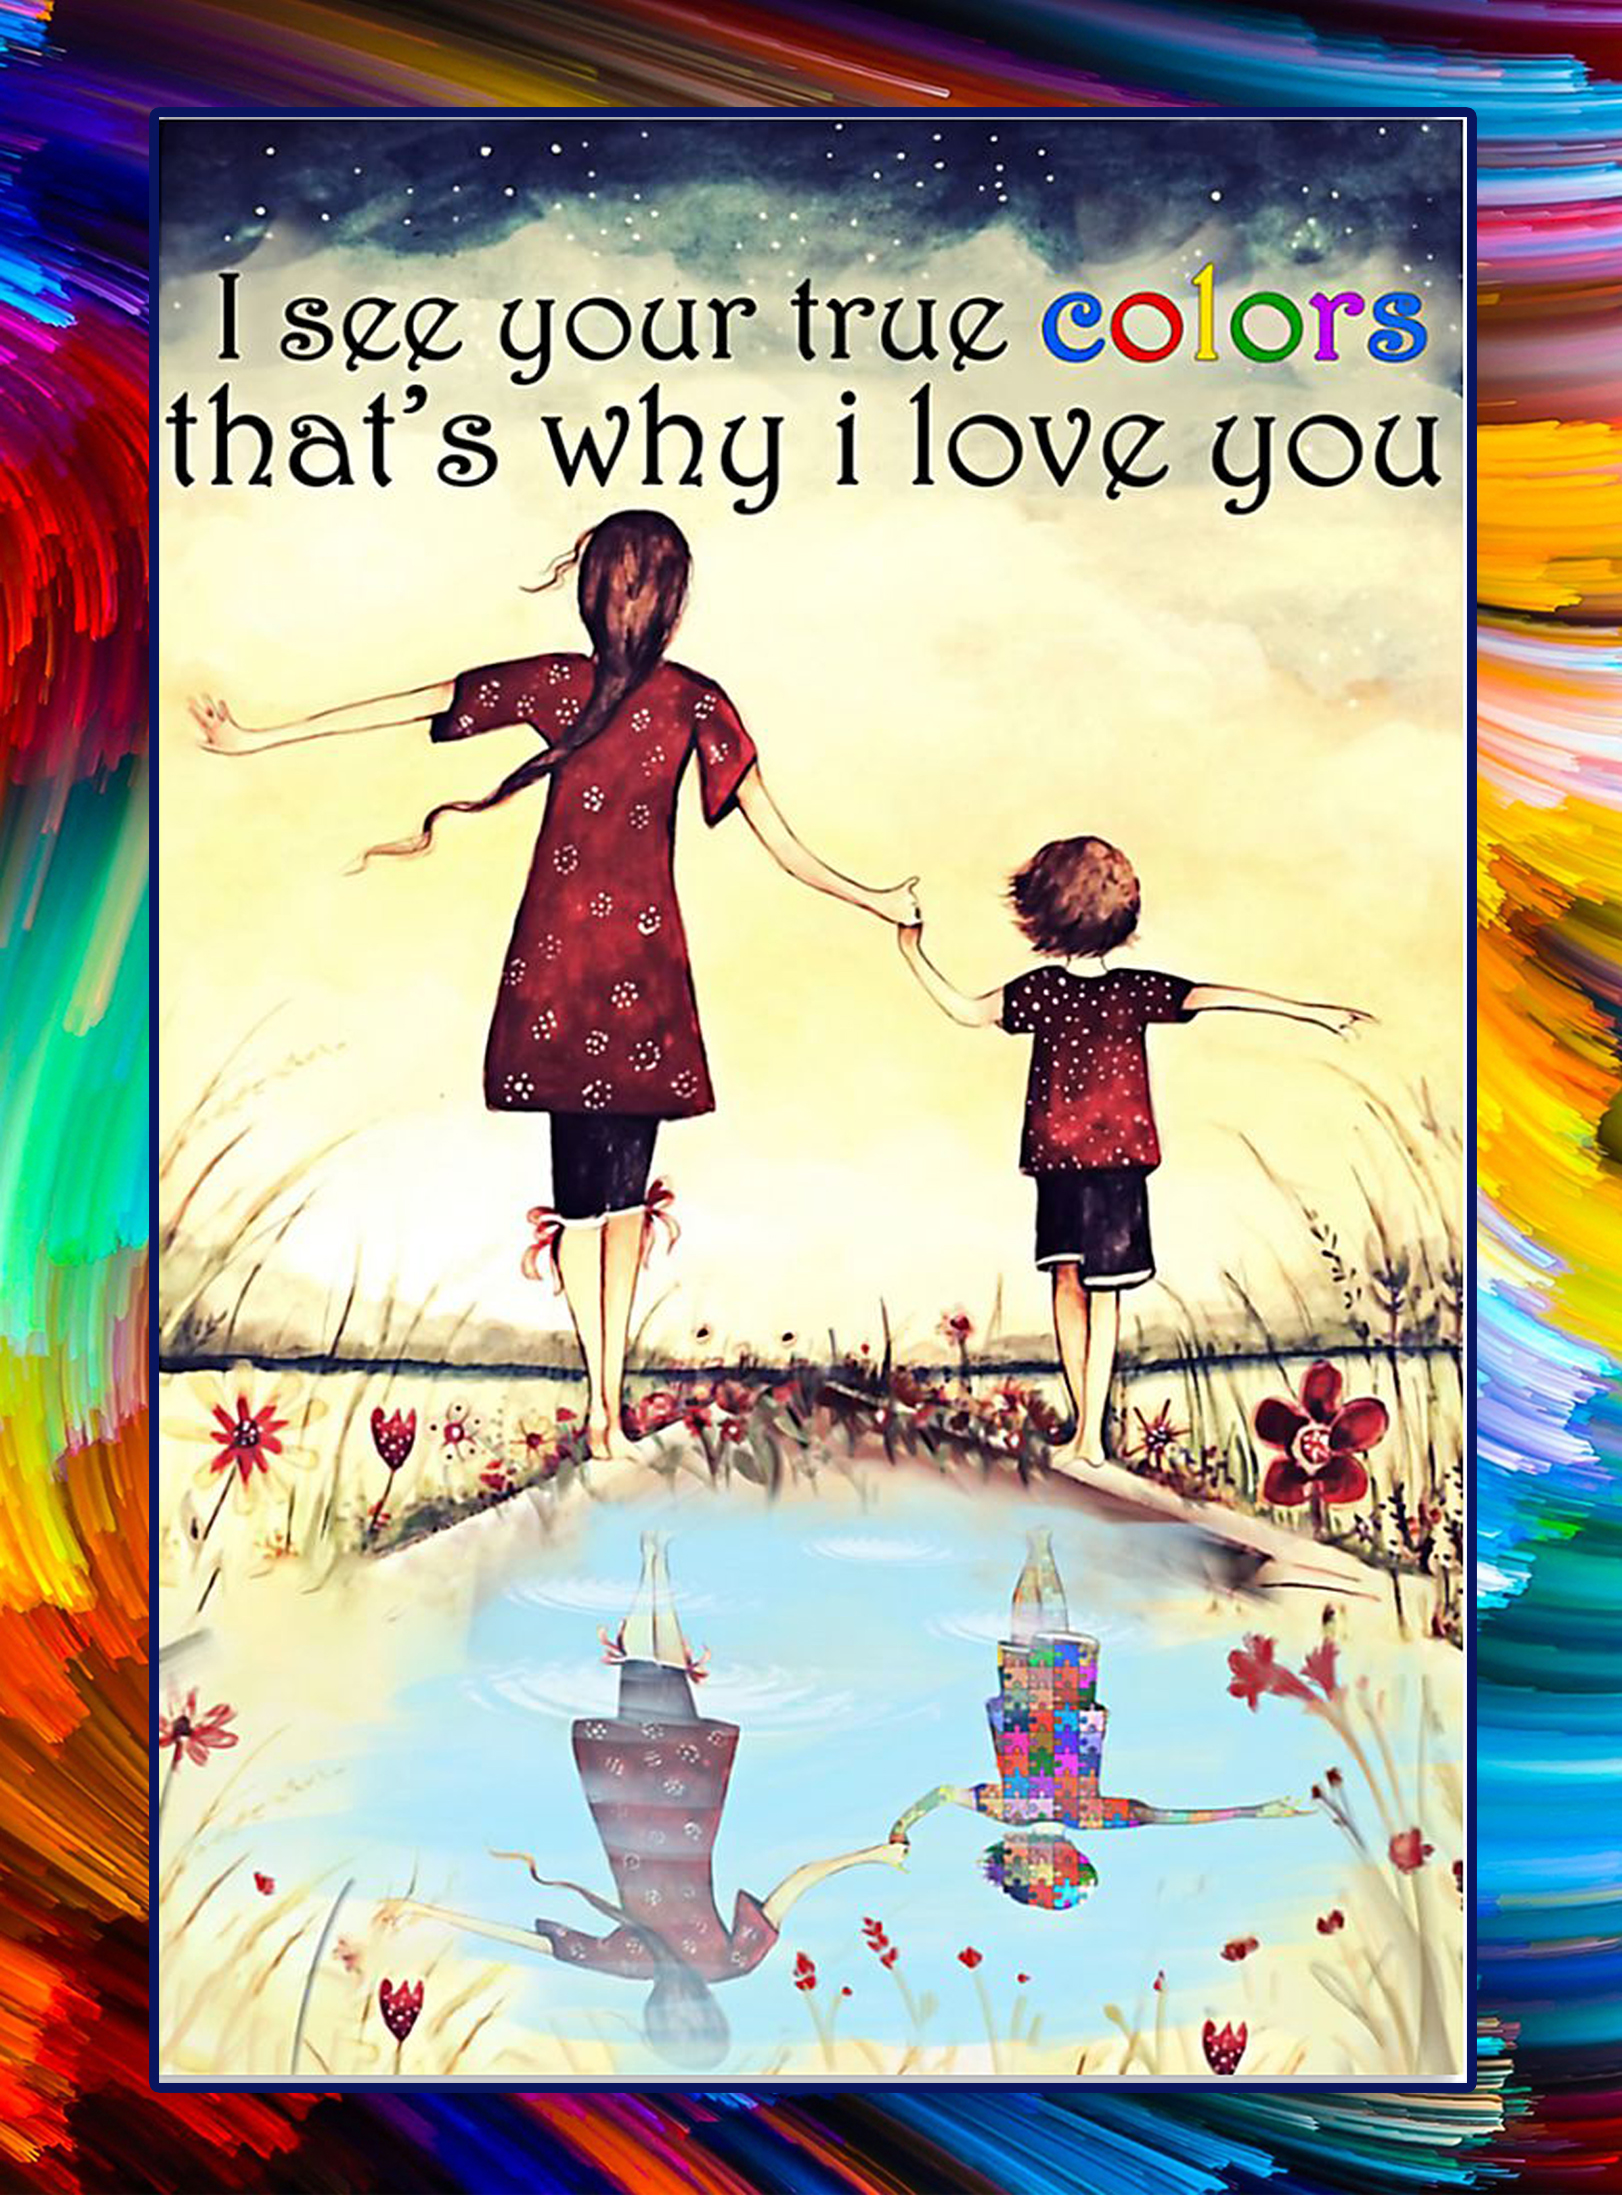 I see your true colors autism poster - A4